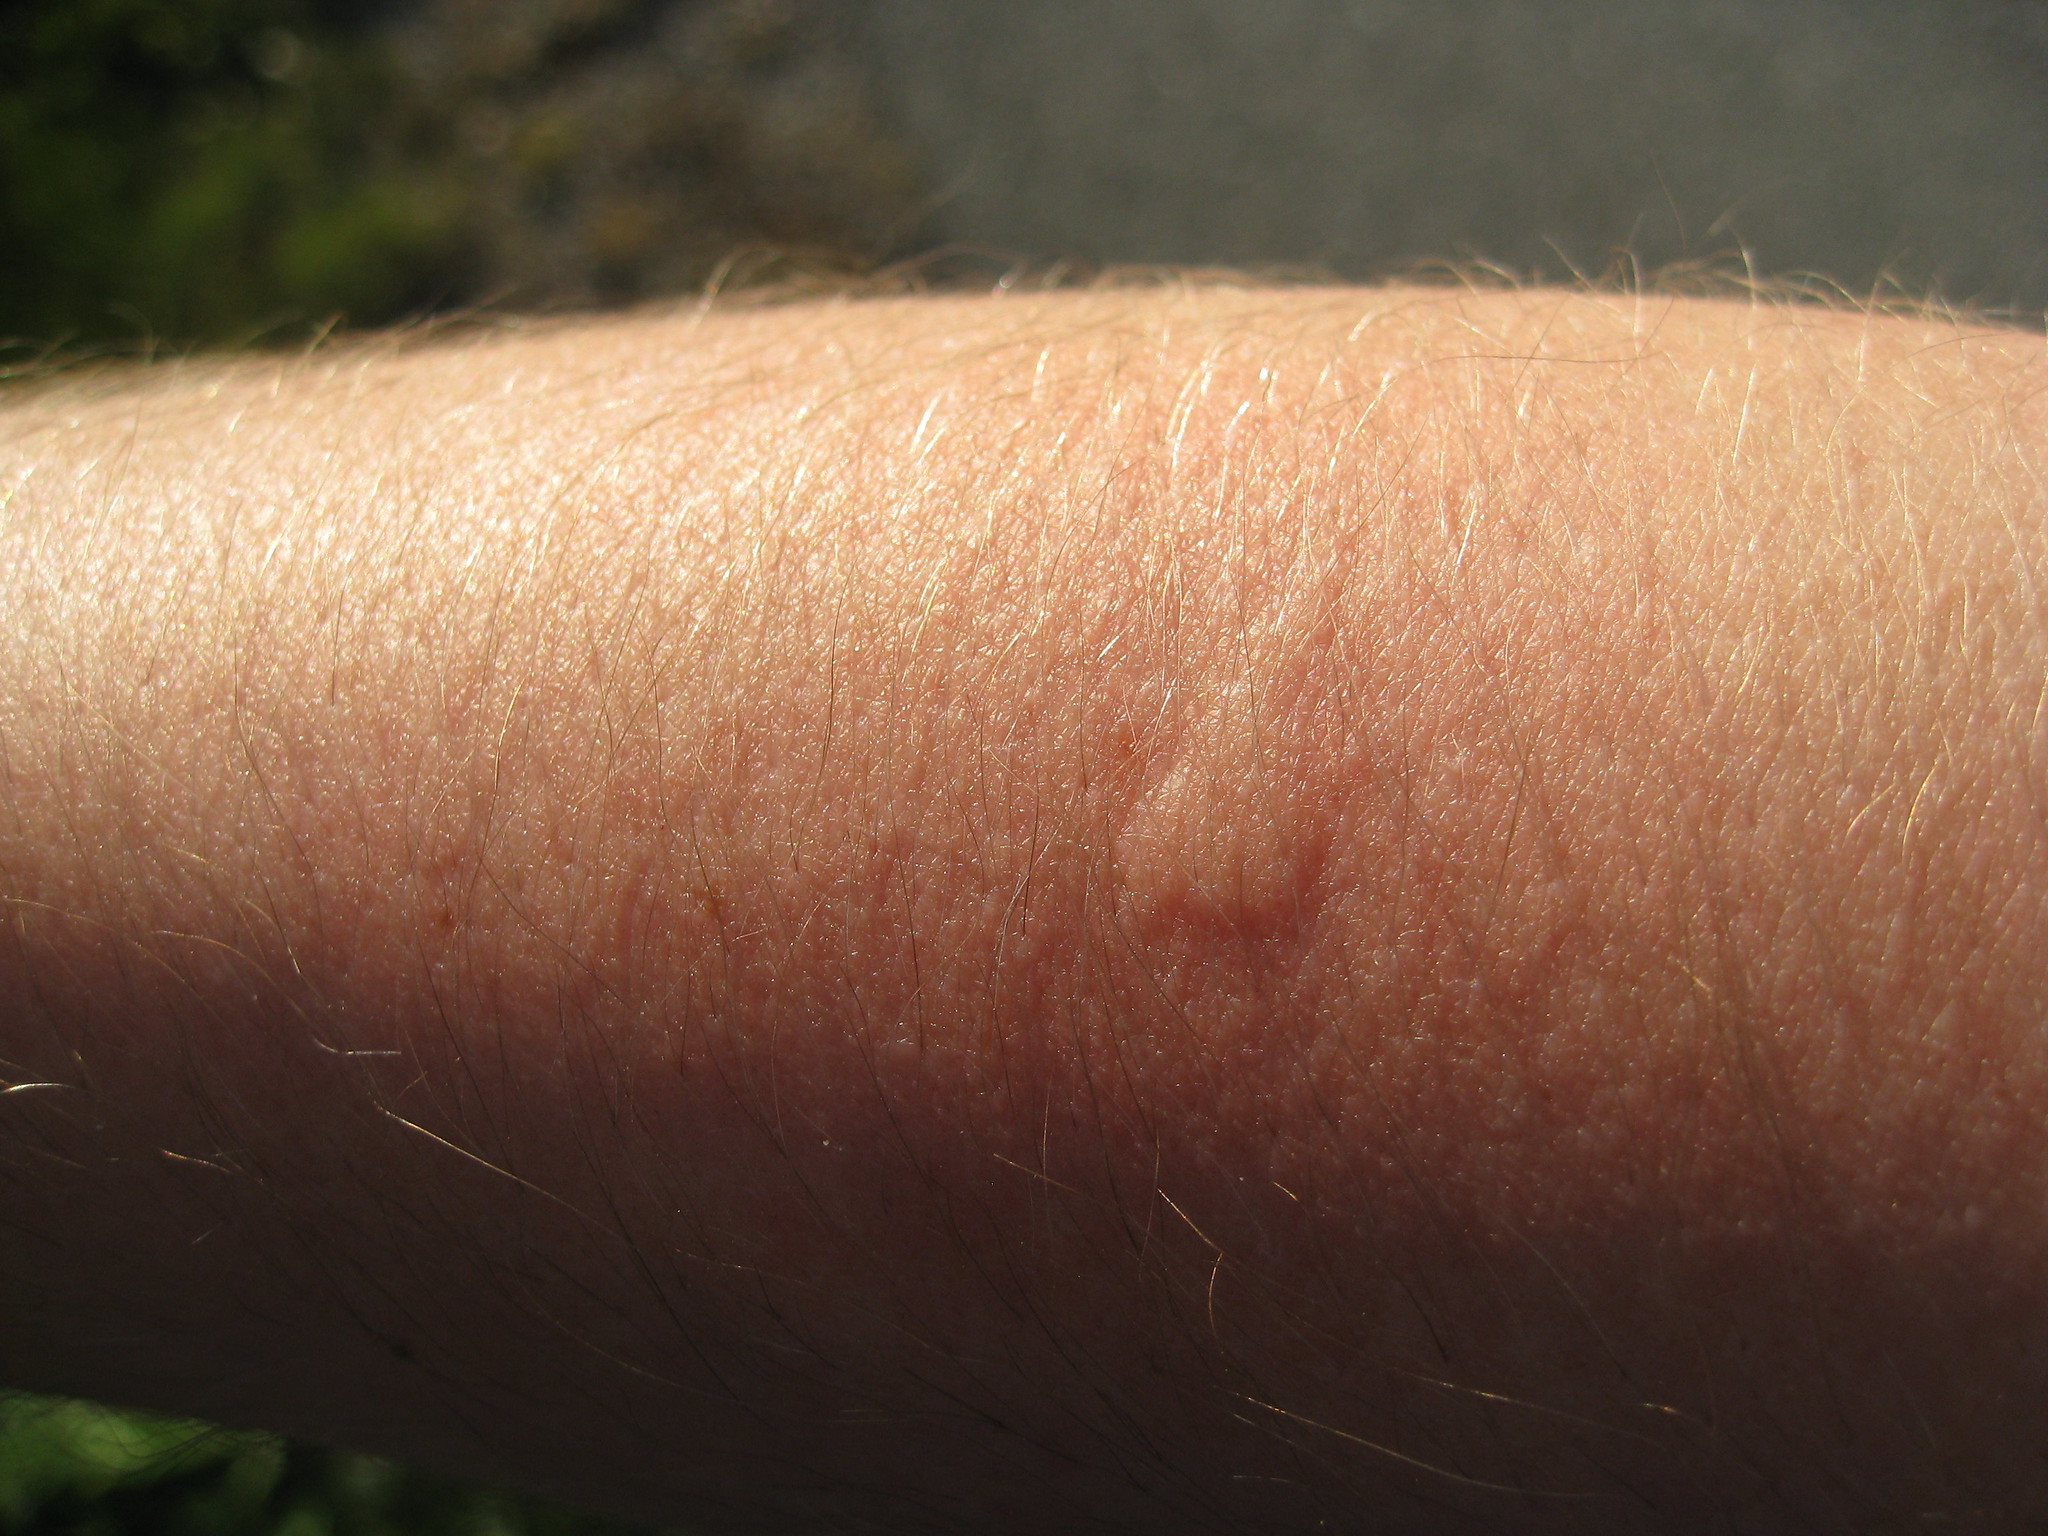 First mosquito bite 2010, 15 minutes later